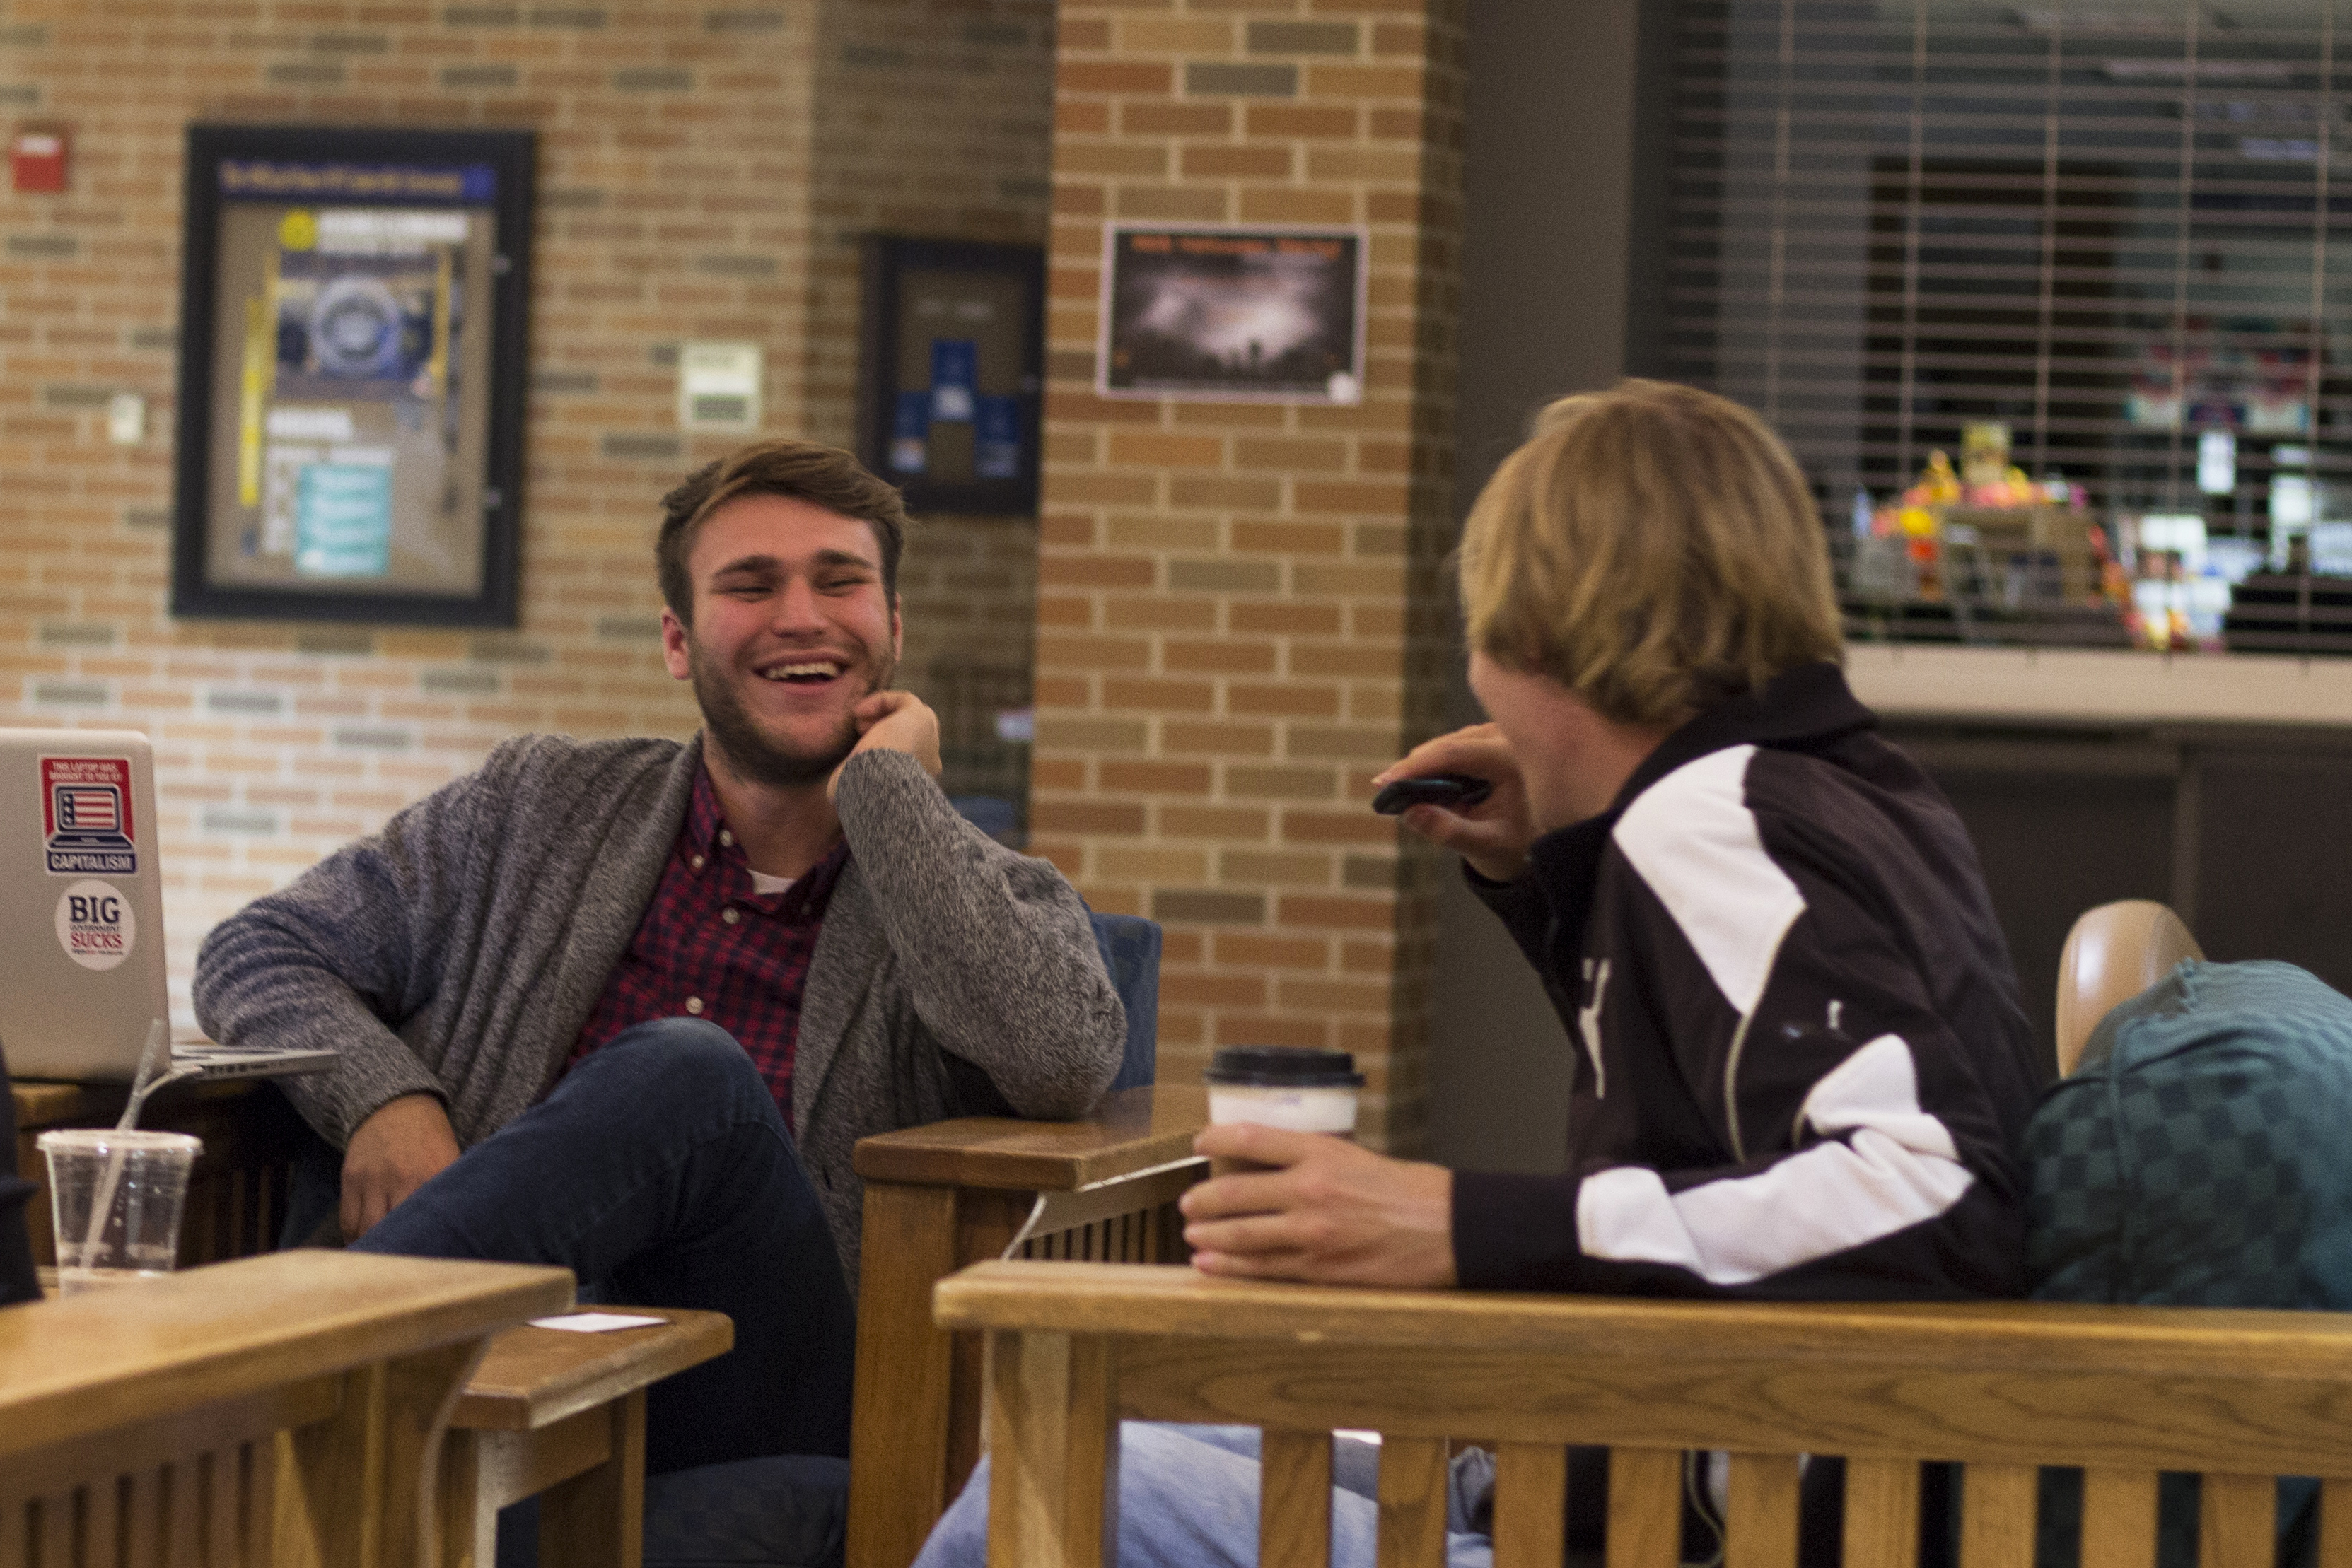 """To me, this event is not about attracting a huge number of students or even gaining a large following. It is about [t]rue, genuine relationships. Technology has created an environment of instant gratification with little effort. This culture of convenience has warped our definition of friendship."" - Sumrall enjoys one-on-one time with a prospective student during one of the less lively nights."